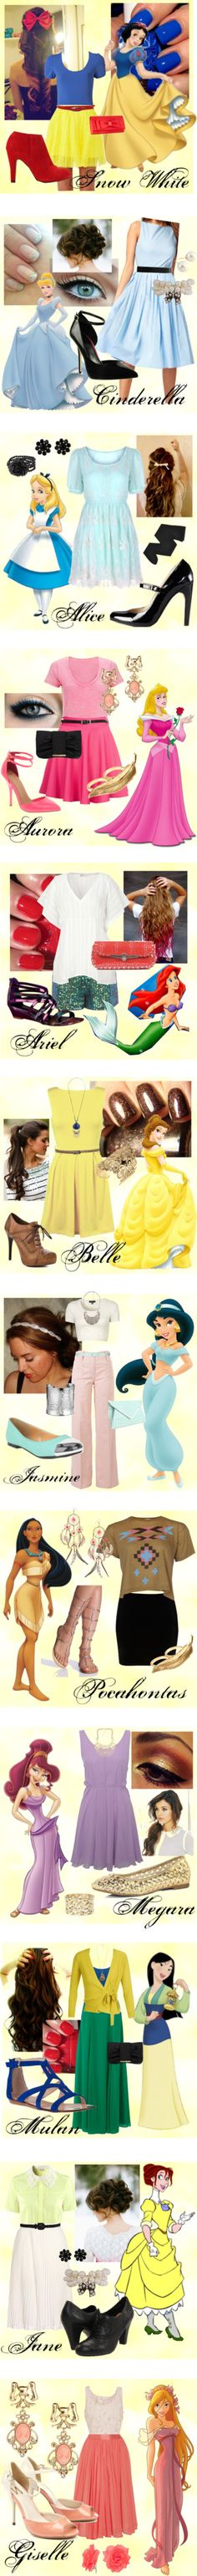 Disney Outfits, would easily wear all of these!